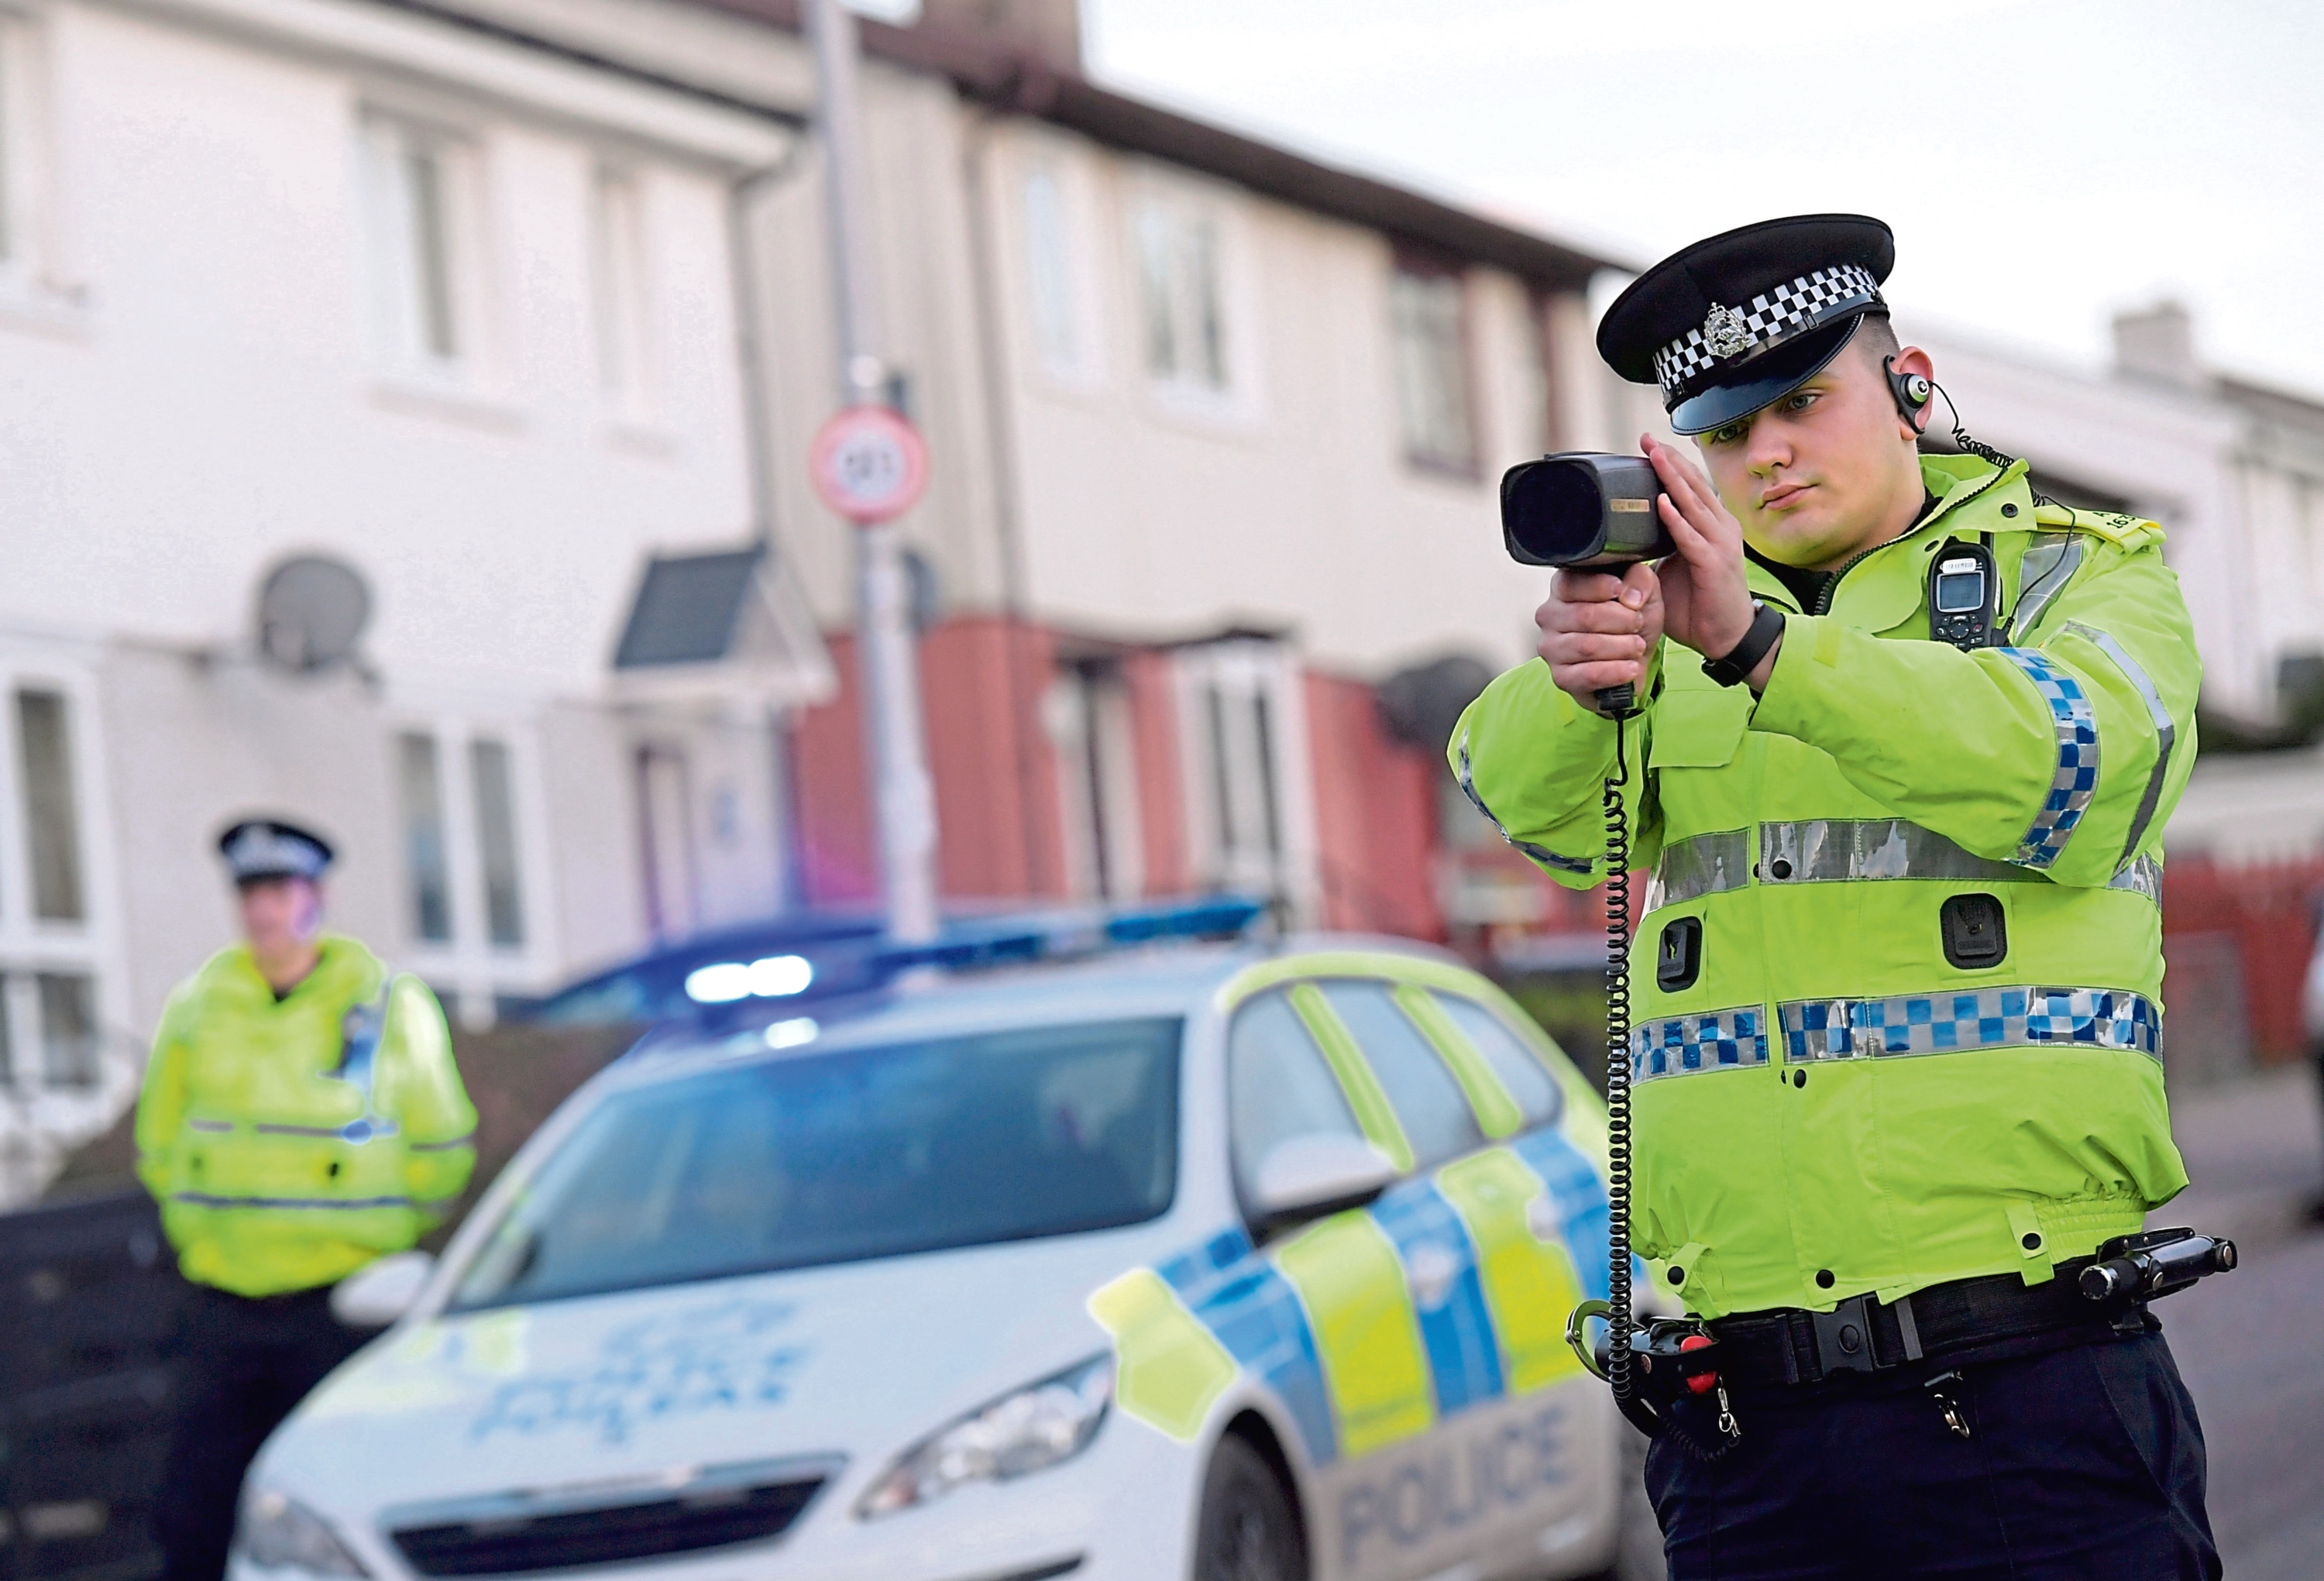 Speeding offences in Dundee have increased by more than 50%, according to the latest quarterly report from Police Scotland